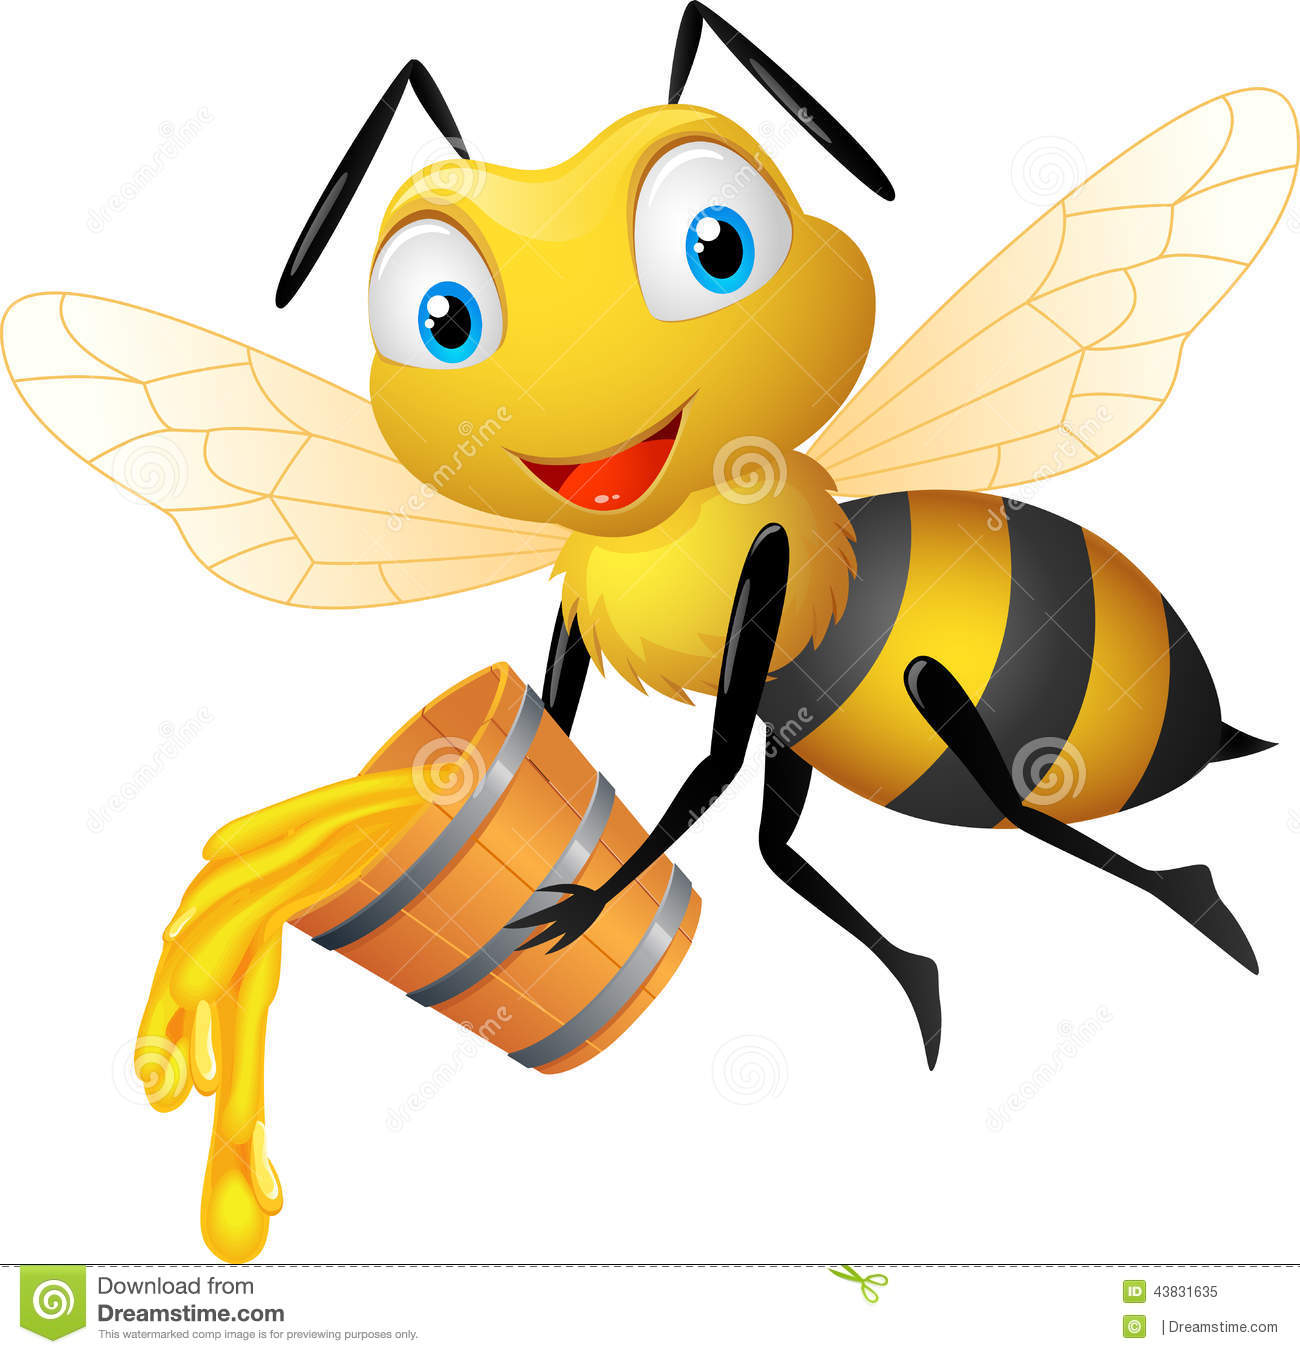 Illustration of funny cartoon bee holding honey bucket.